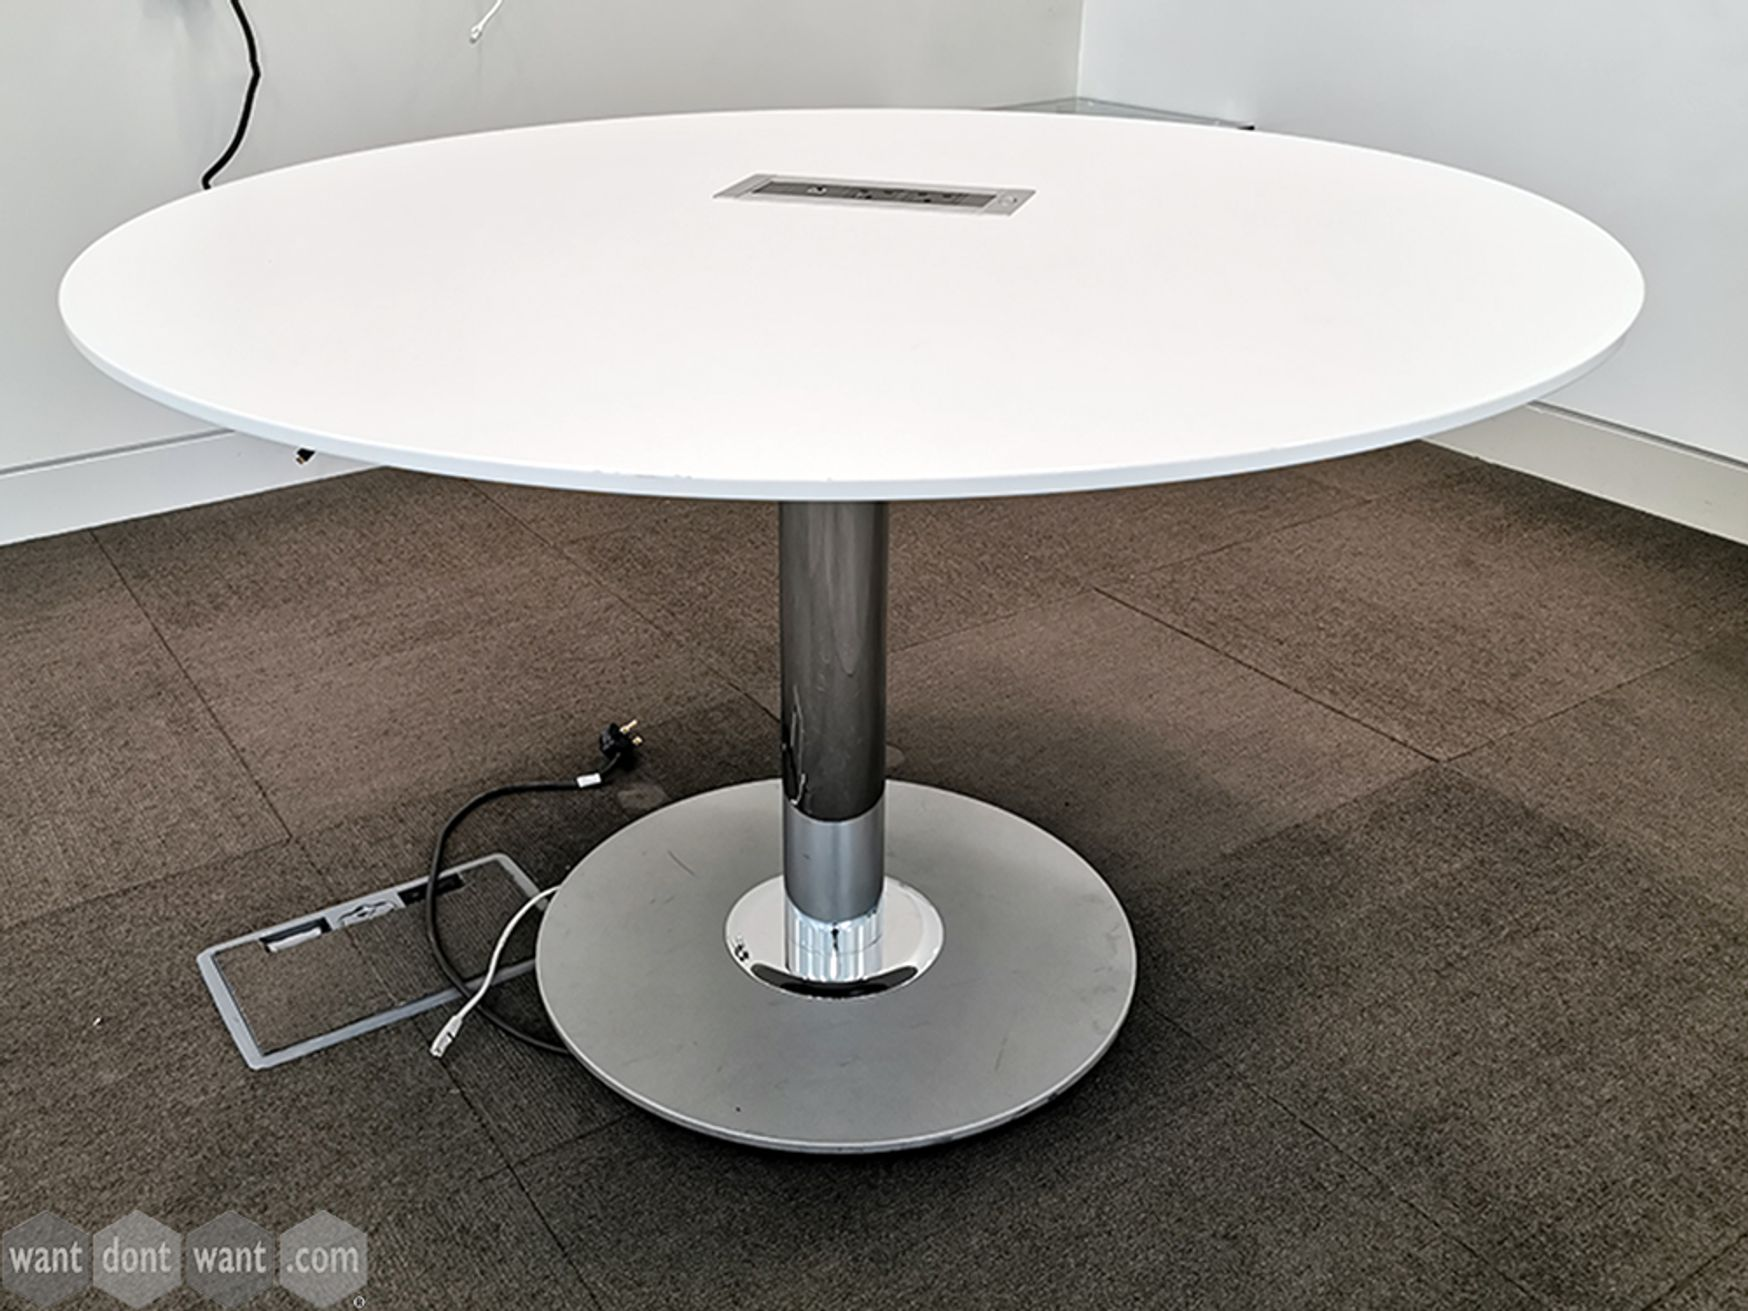 Used White Circular Table with Chrome Column Base and Power/Network Sockets